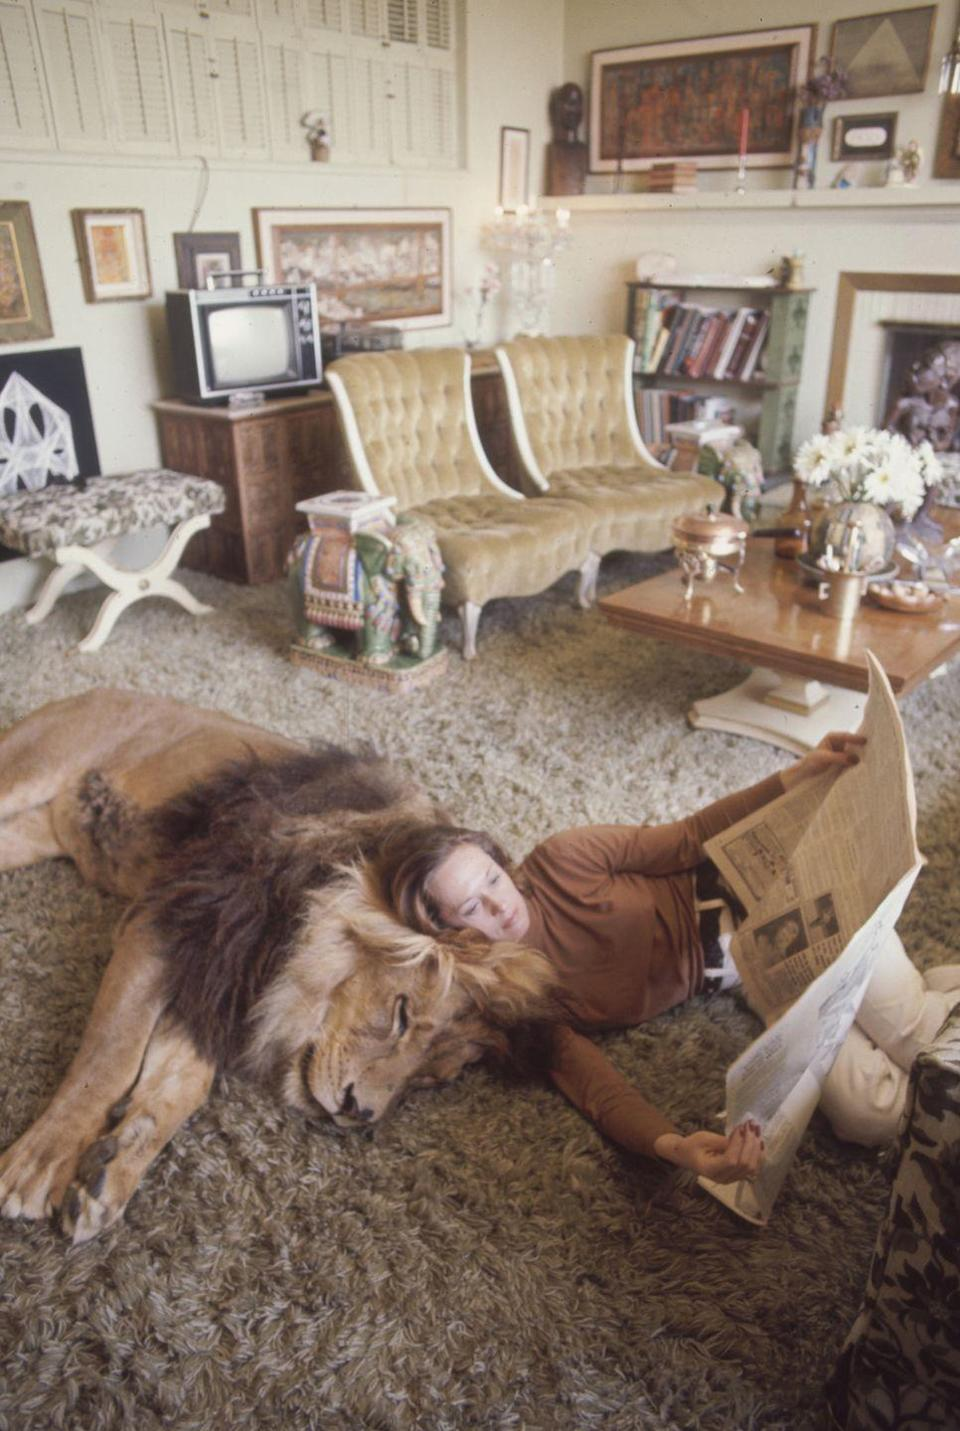 """<p>Tippi Hedren's decorating style is daring and eclectic, but what sparks our interest in her Californian home is her <a href=""""https://www.life.com/animals/something-wild-at-home-with-tippi-hedren-melanie-griffith-and-a-400-pound-lion/"""" rel=""""nofollow noopener"""" target=""""_blank"""" data-ylk=""""slk:400-pound pet lion, Neil"""" class=""""link rapid-noclick-resp"""">400-pound pet lion, Neil</a>. A devout animal activist, Tippi's lion was comfortable in almost every room of the house — even the bed she shared with husband Noel Marshall. She later founded the Roar Foundation and Shambala Preserve Sanctuary. </p>"""